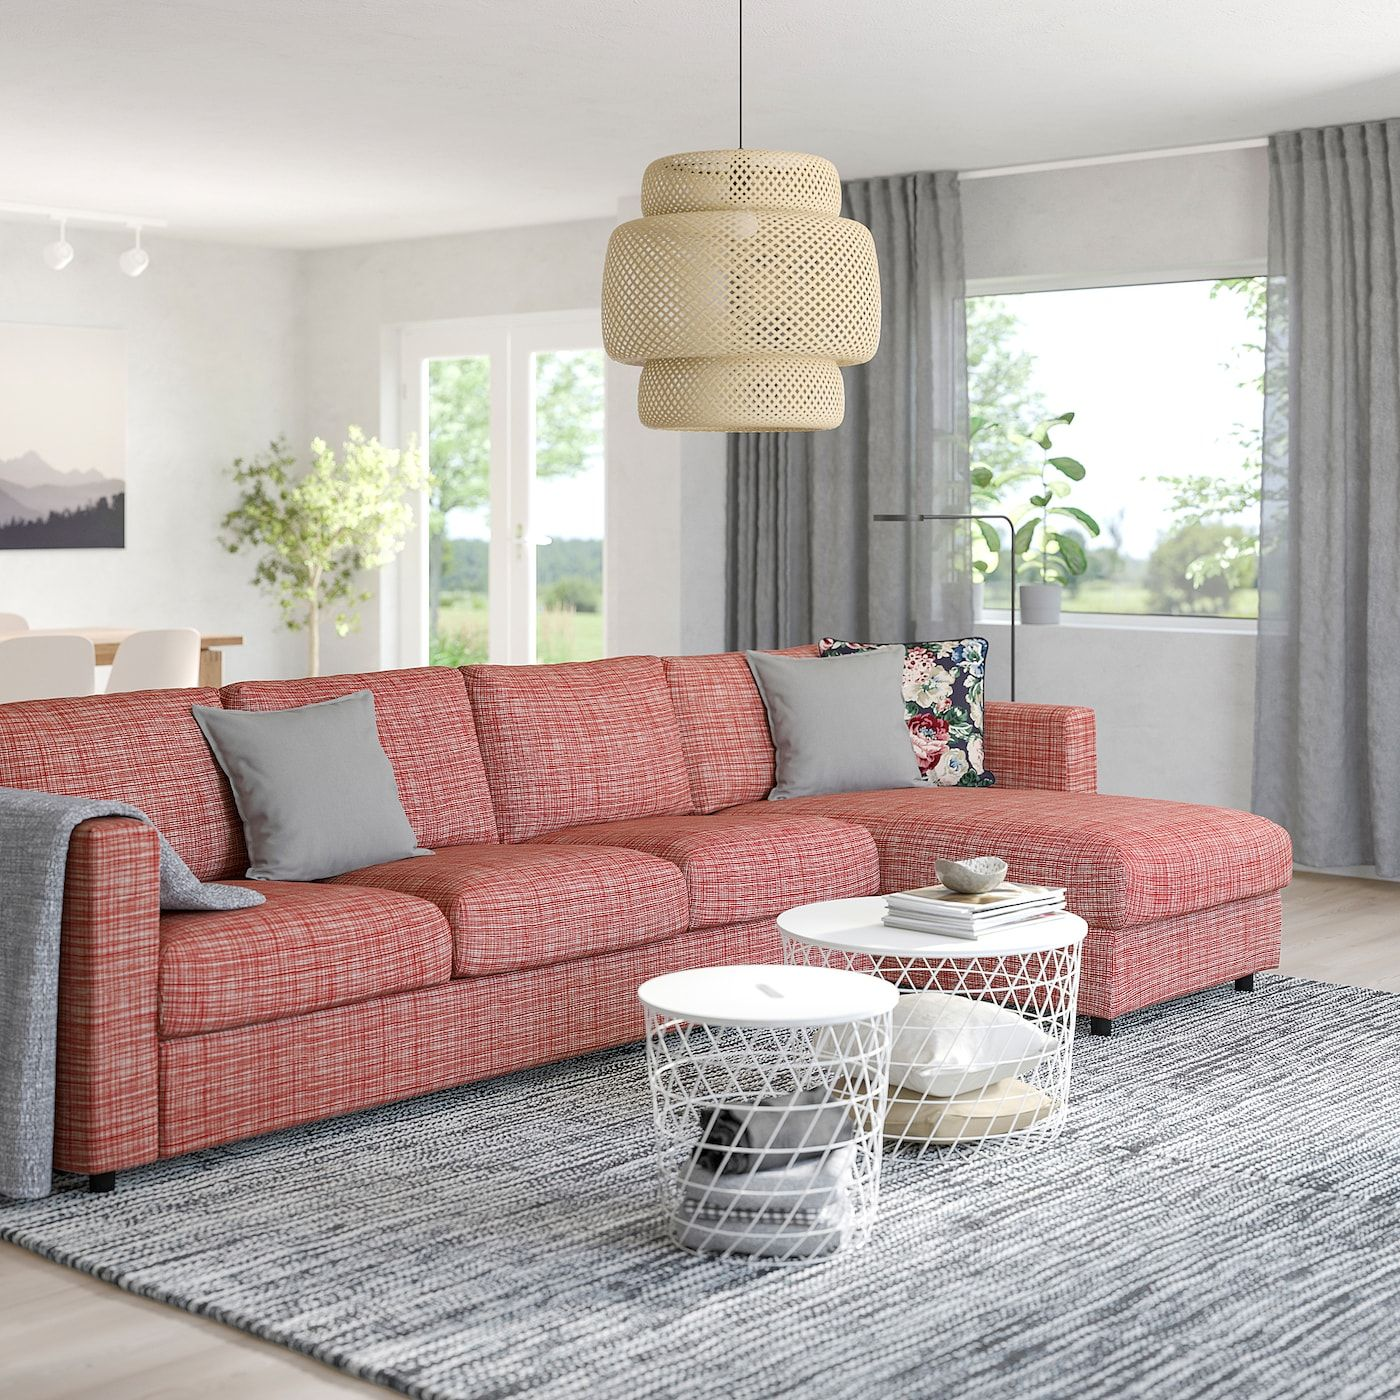 Vimle Sectional 4 Seat With Chaise Dalstorp Multicolor Sofa Bed With Chaise U Shaped Sofa Sofa Back Cushions